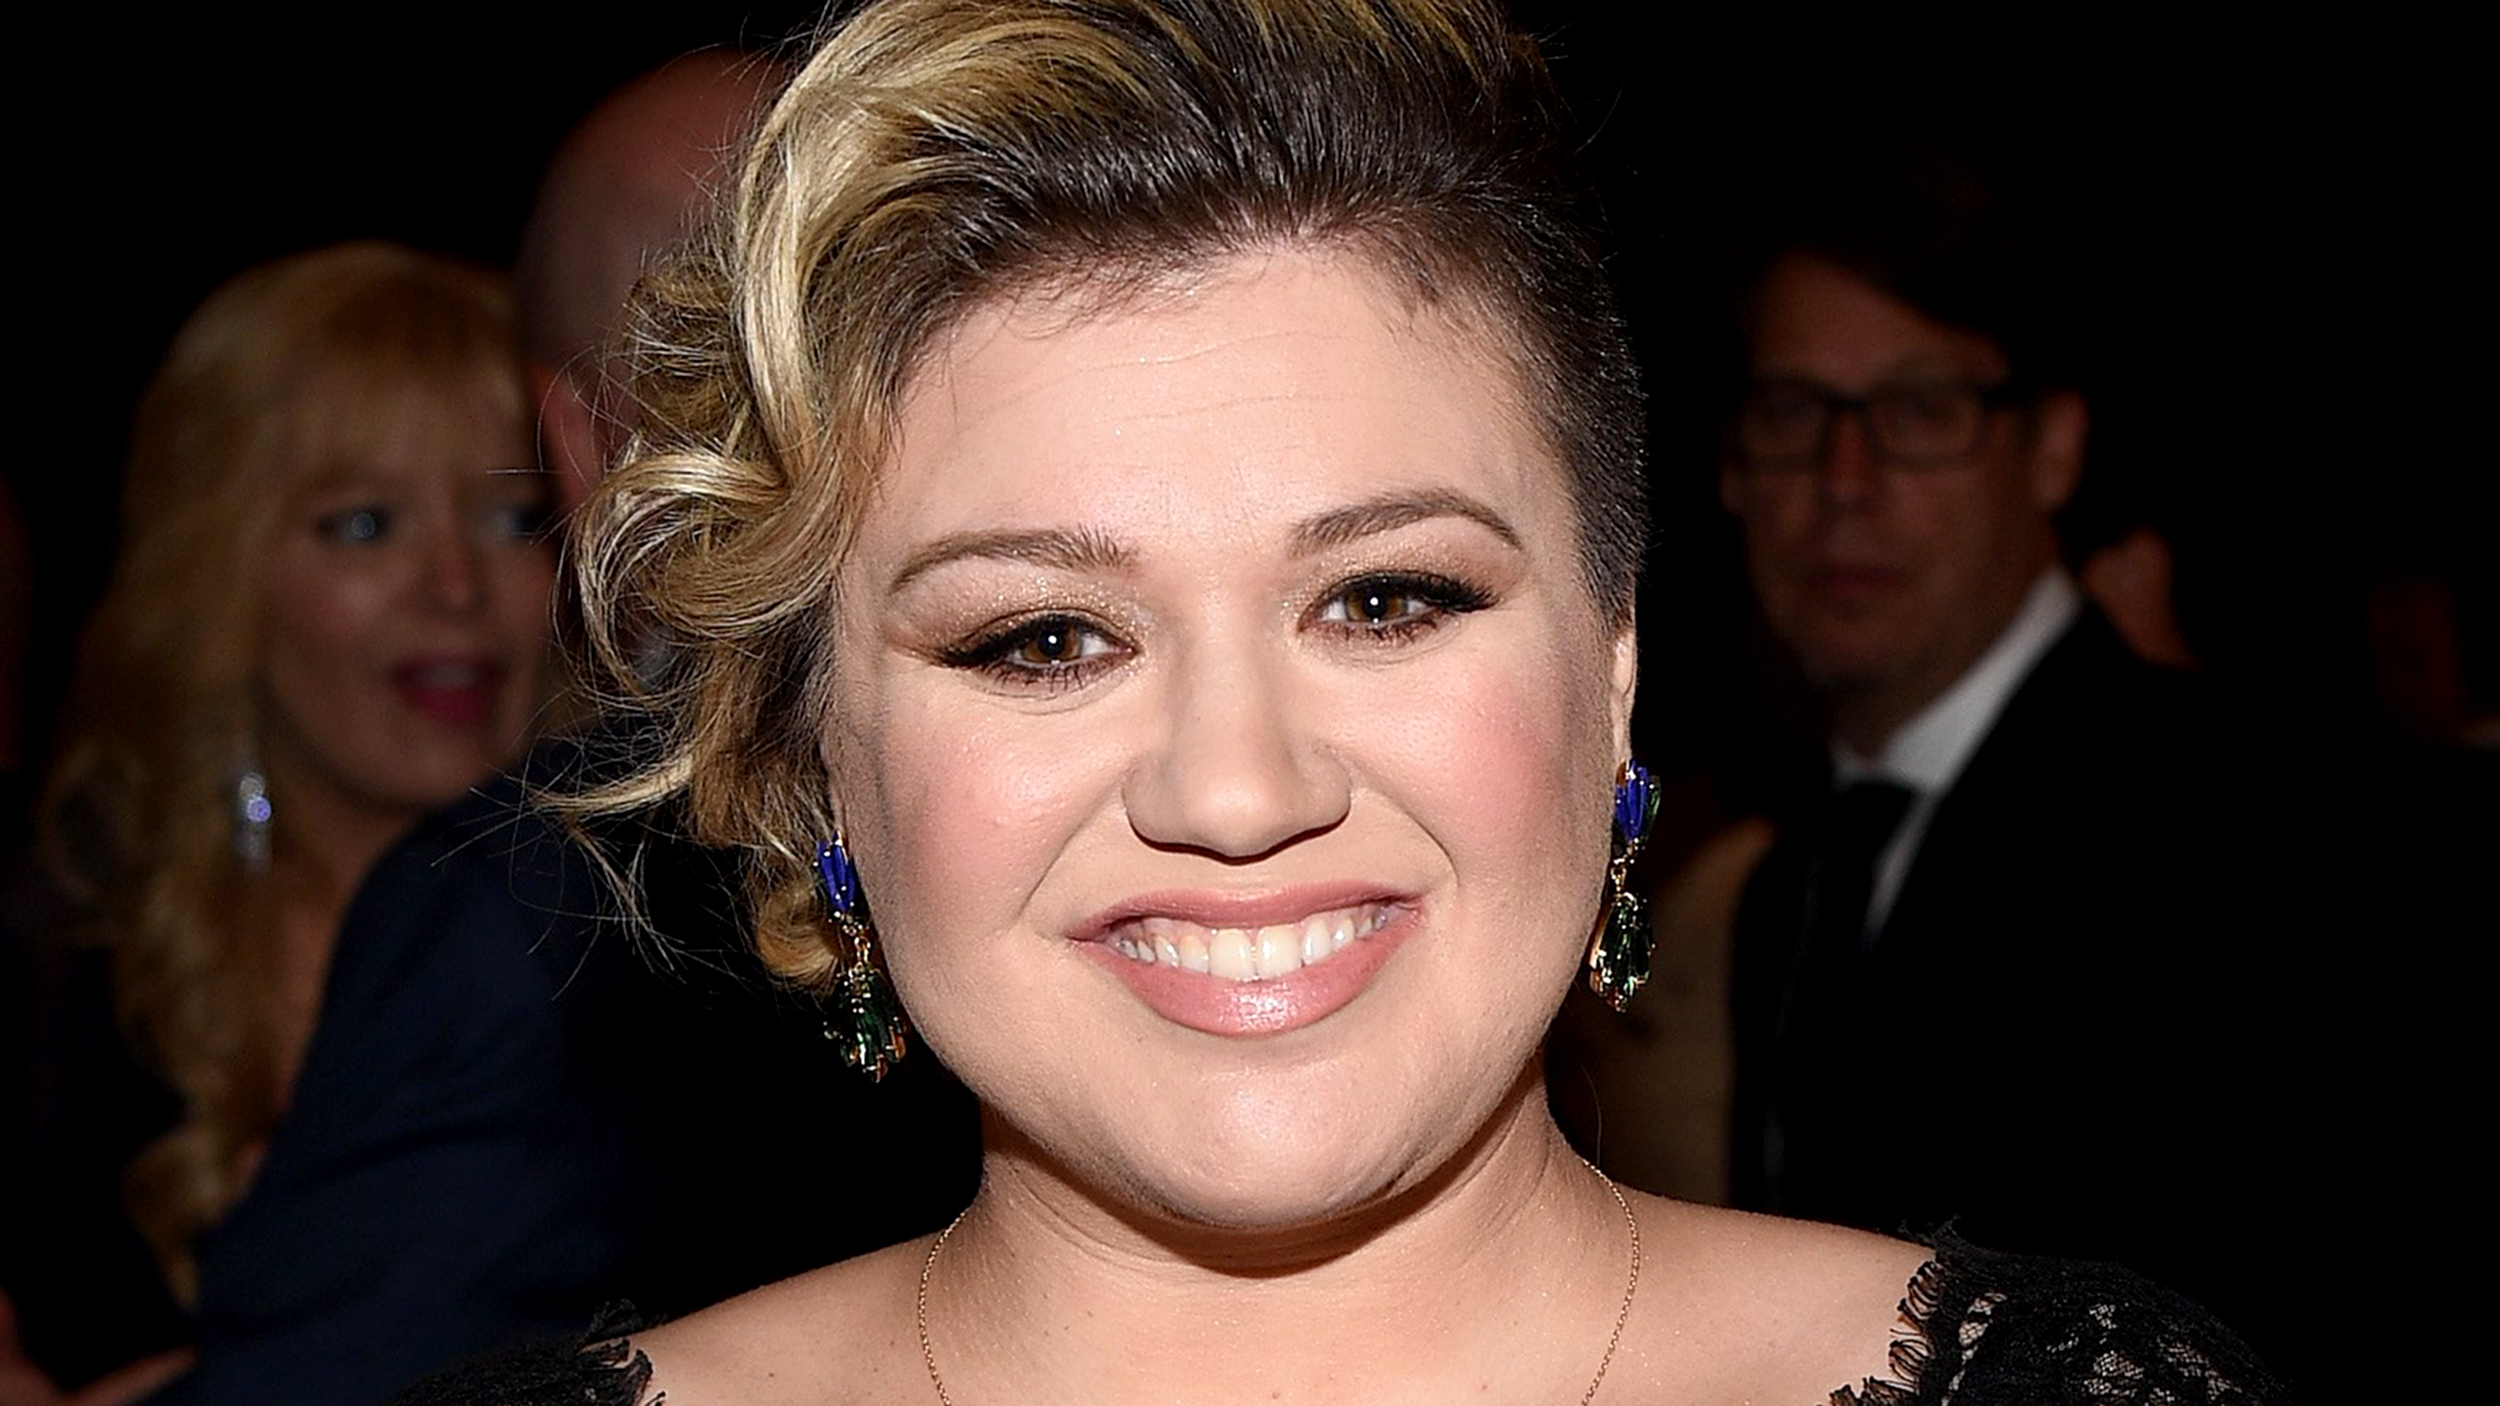 Kelly Clarkson shares family\'s amazing \'Game of Thrones\' Christmas card